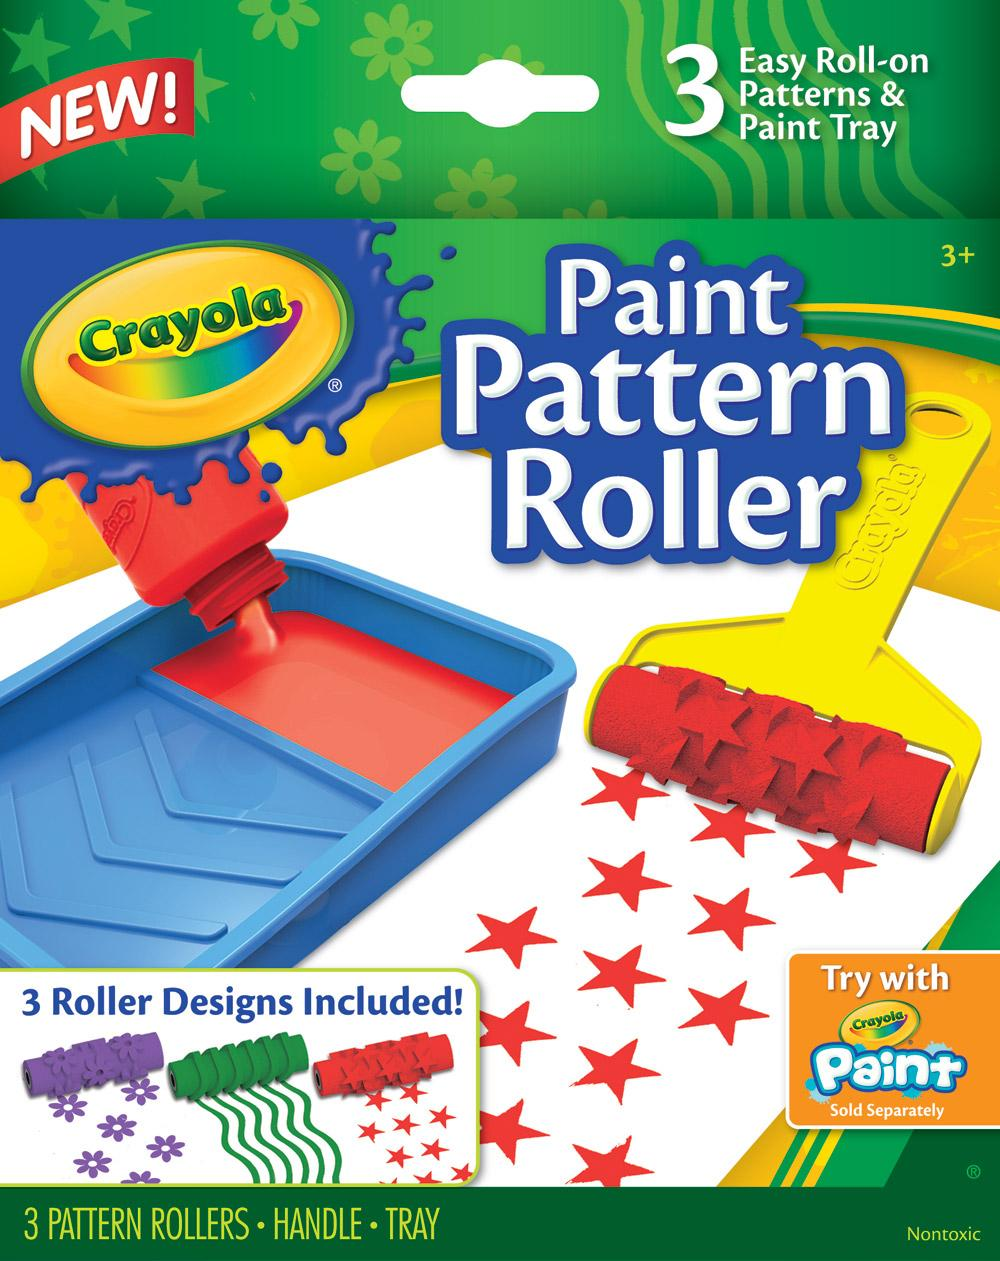 Amazon.com: Crayola Paint Pattern Roller: Toys & Games